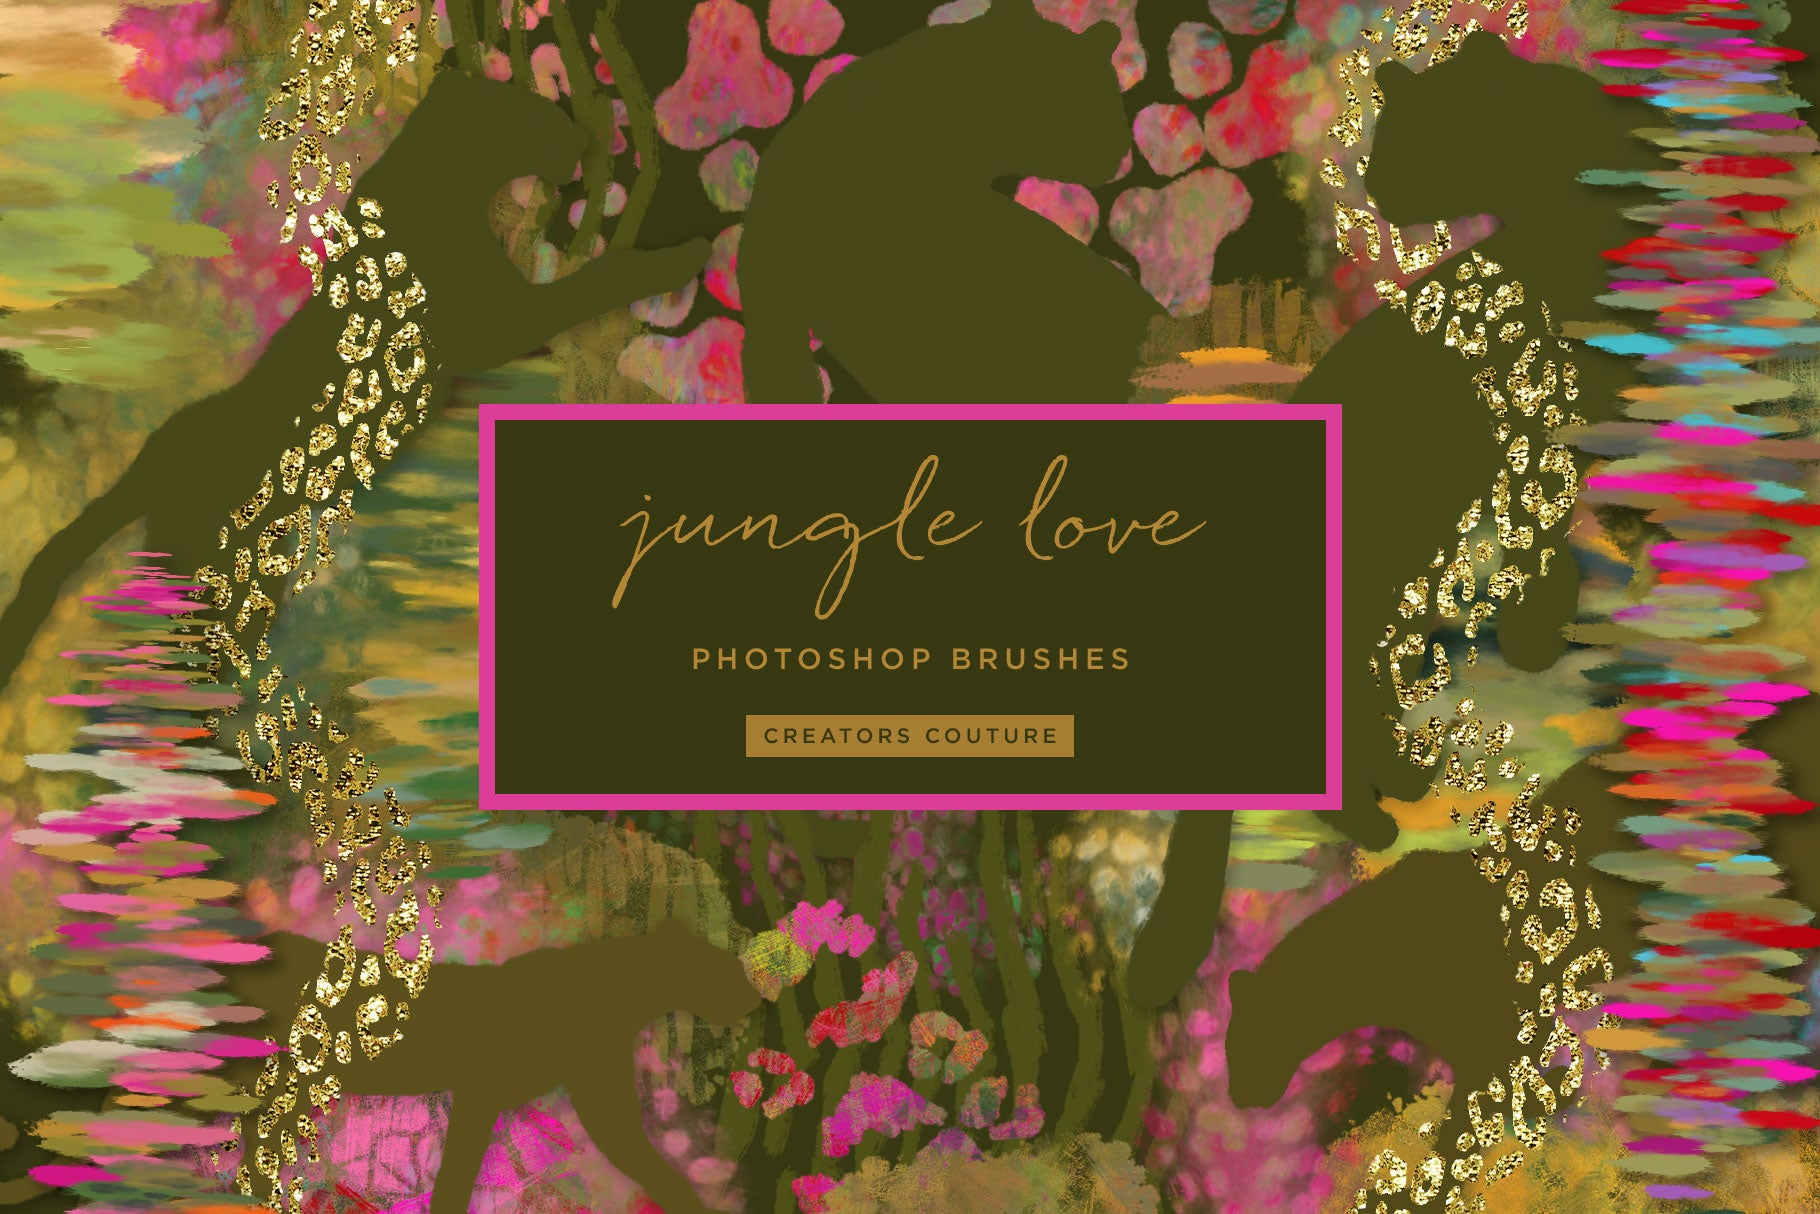 Jungle Love Exotic Animal Print Photoshop Brushes - Creators Couture